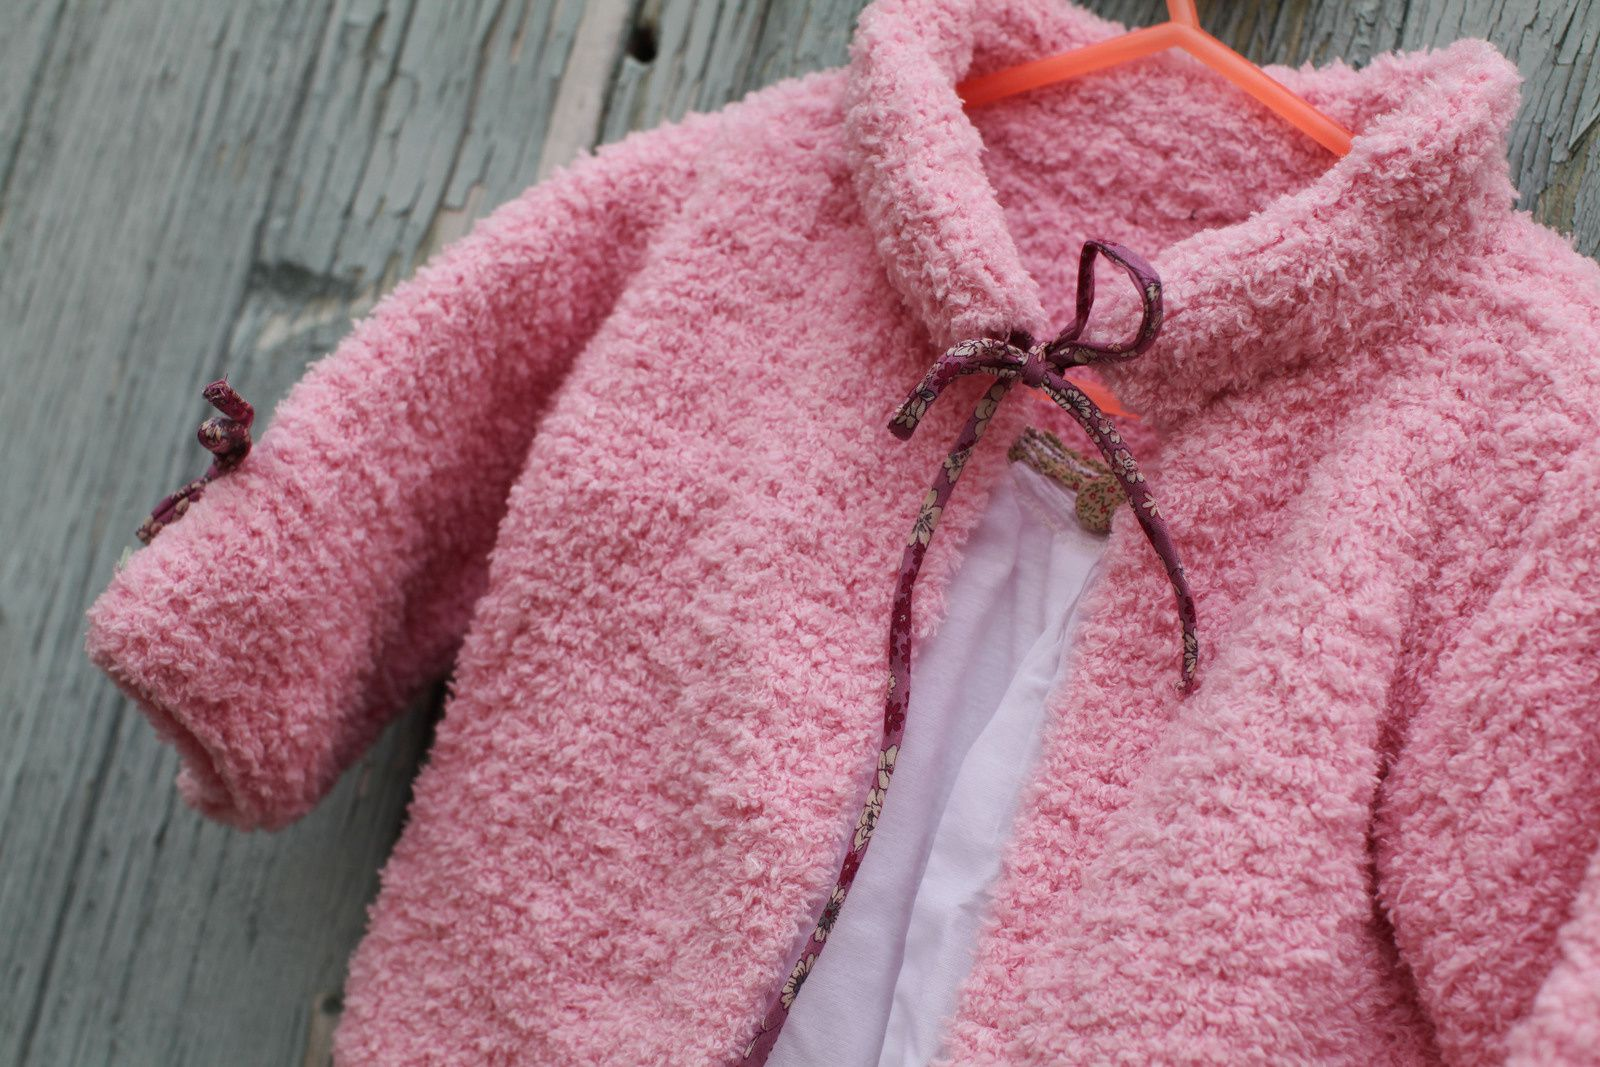 Handmade pink vest with baby whool, 2 years size, by Paulette, on sale on Dawanda